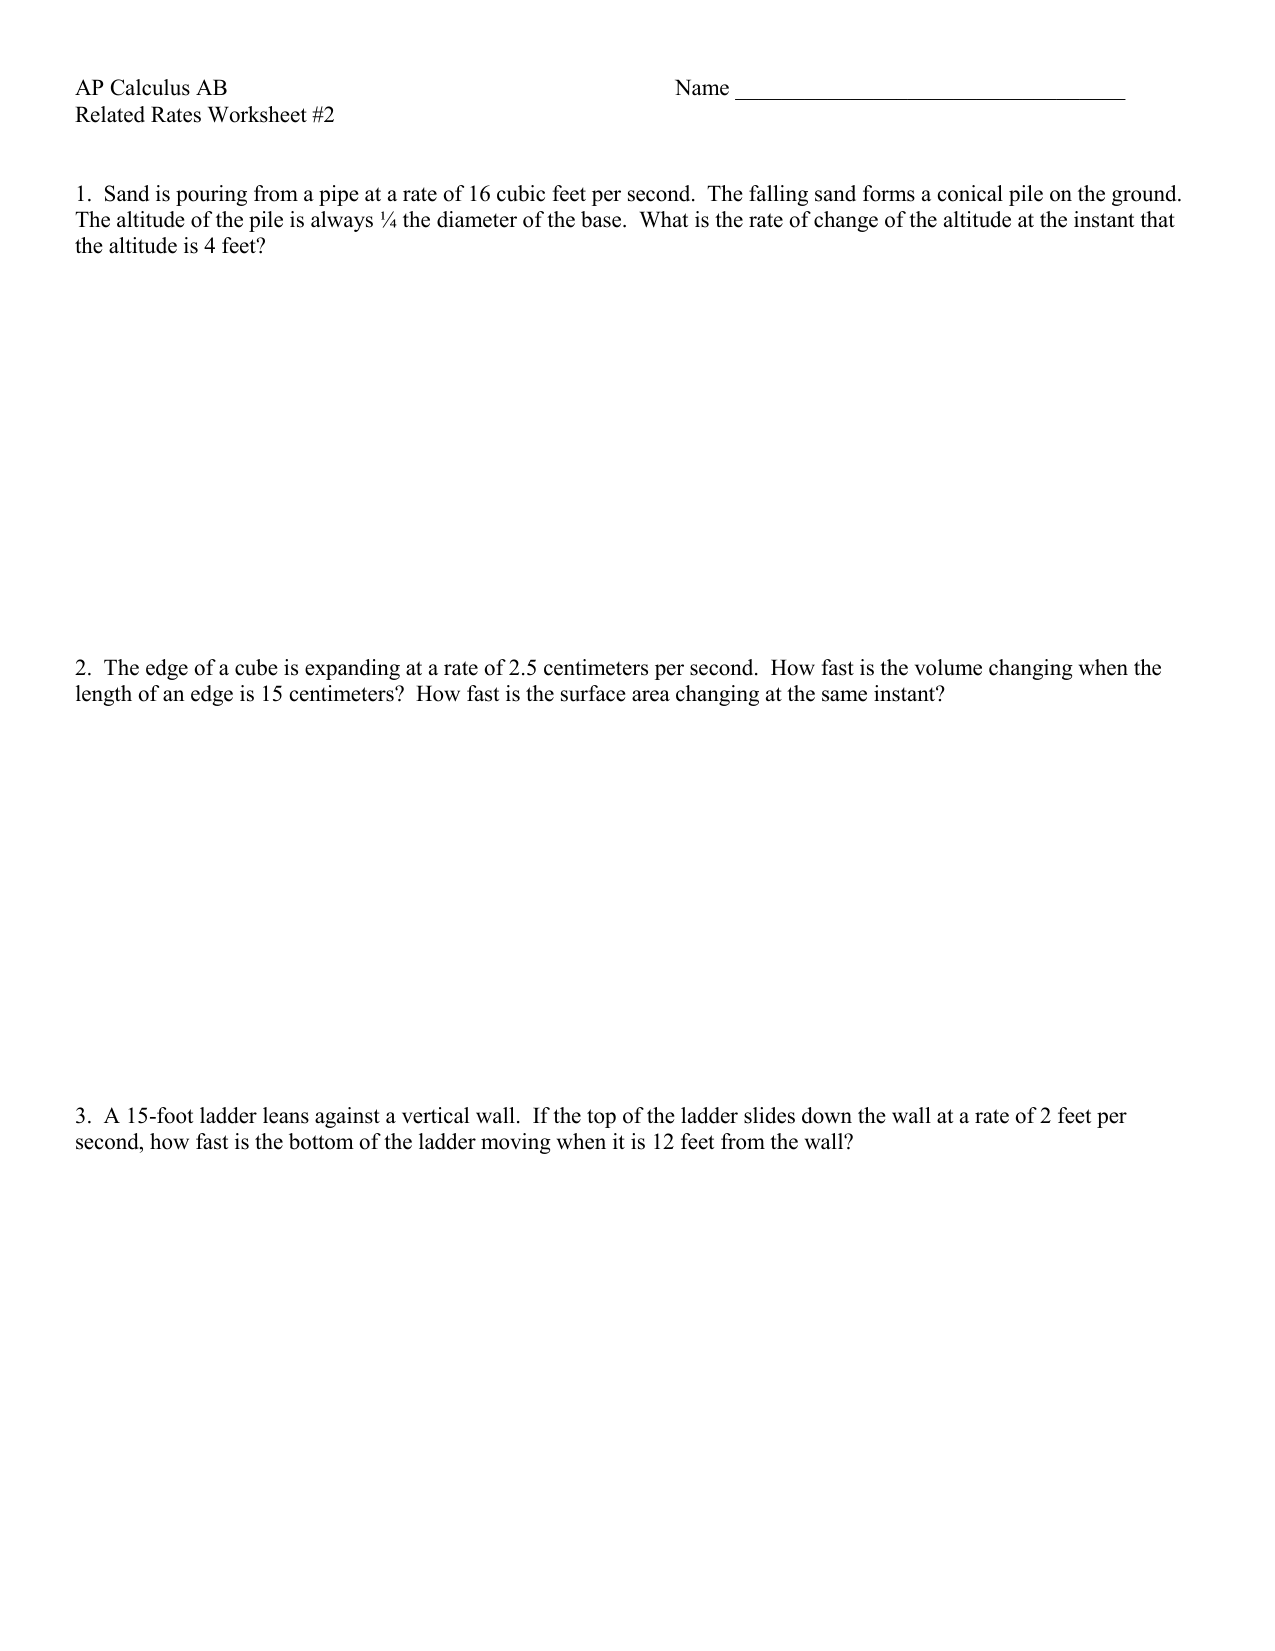 Worksheets Related Rates Worksheet related rates worksheet 2